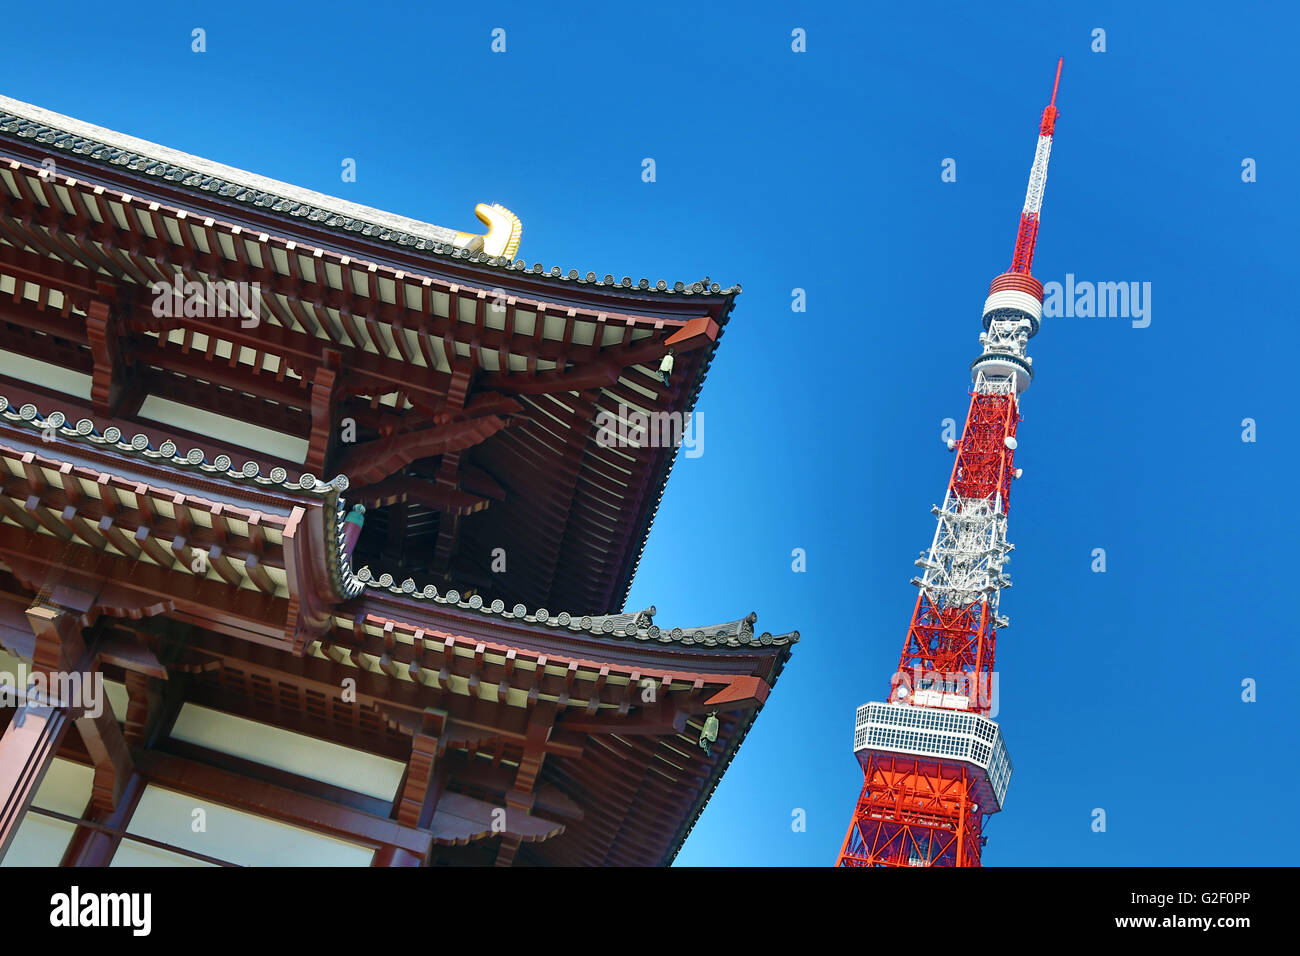 Roof of the Daiden (Hondo) the main hall of Zojoji Temple and the Tokyo Tower in Tokyo, Japan - Stock Image